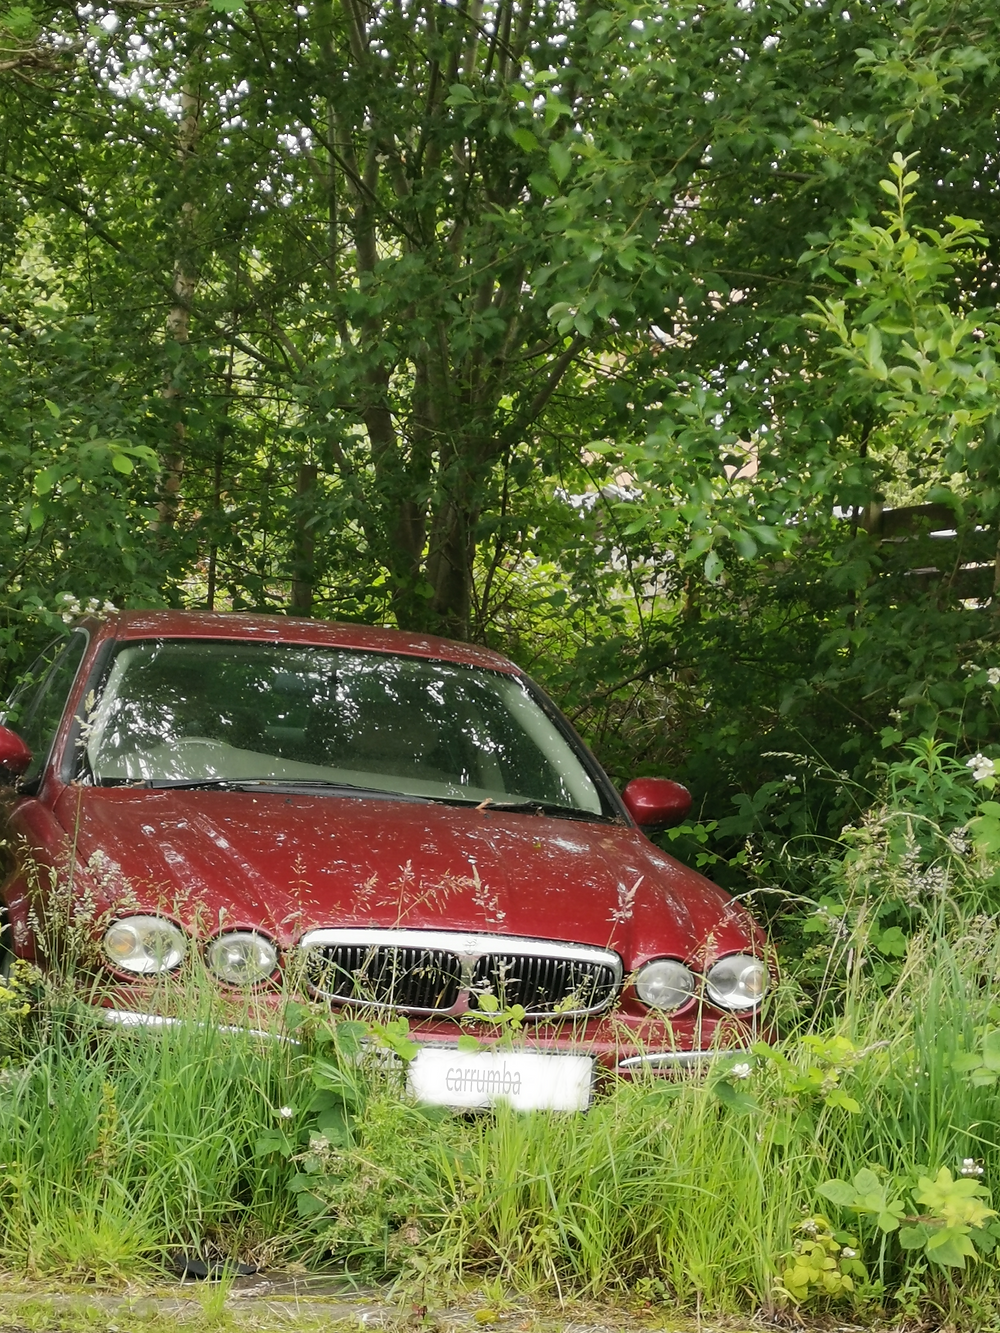 Red Jaguar car under trees and surrounded by bonnet height, overgrown grass